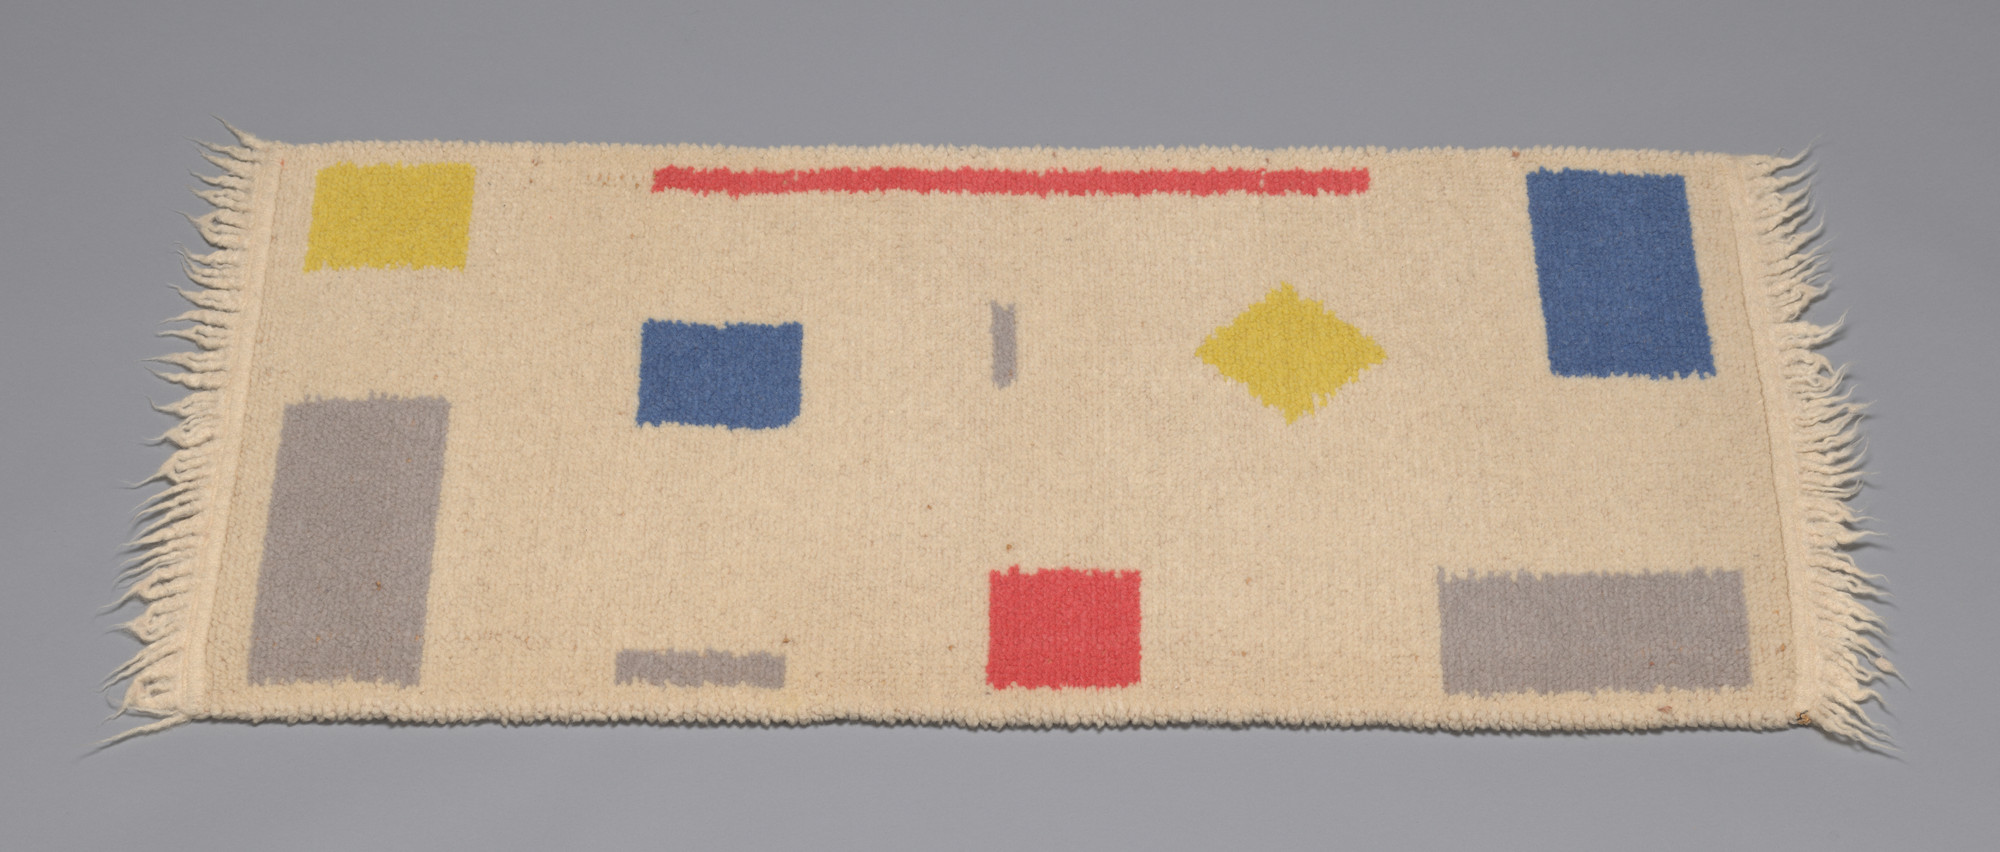 Bart Van Der Leck. Double Faced Rug. 1929–1935